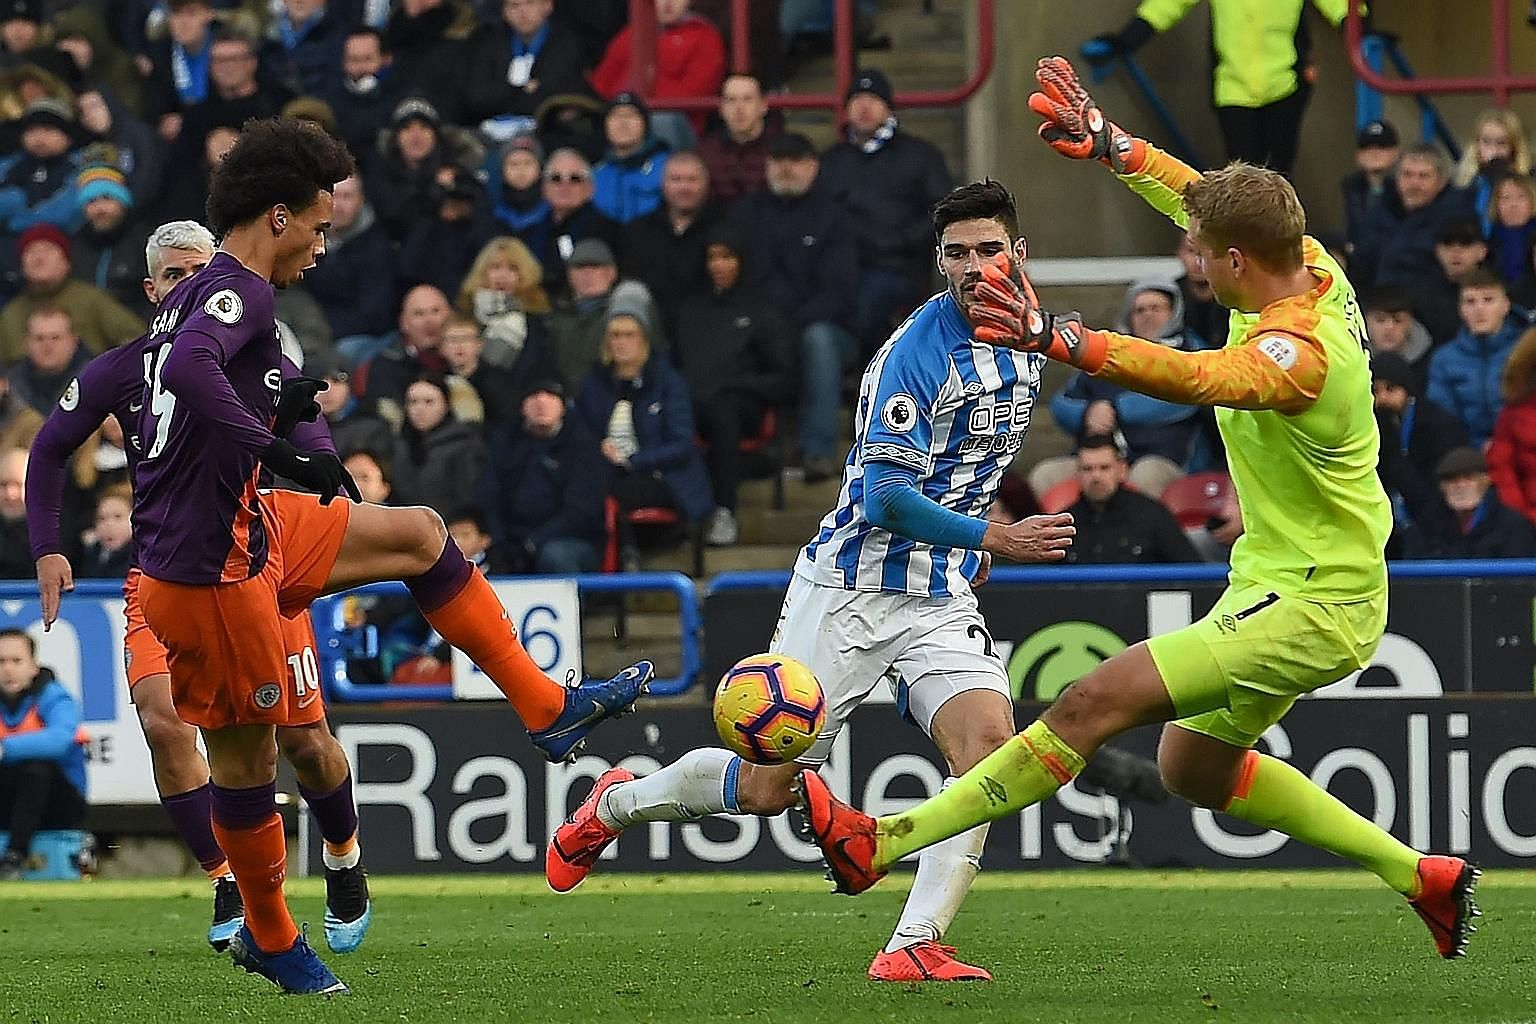 Manchester City's German midfielder Leroy Sane shoots past Huddersfield goalkeeper Jonas Lossl to score their third goal in the 3-0 victory yesterday.